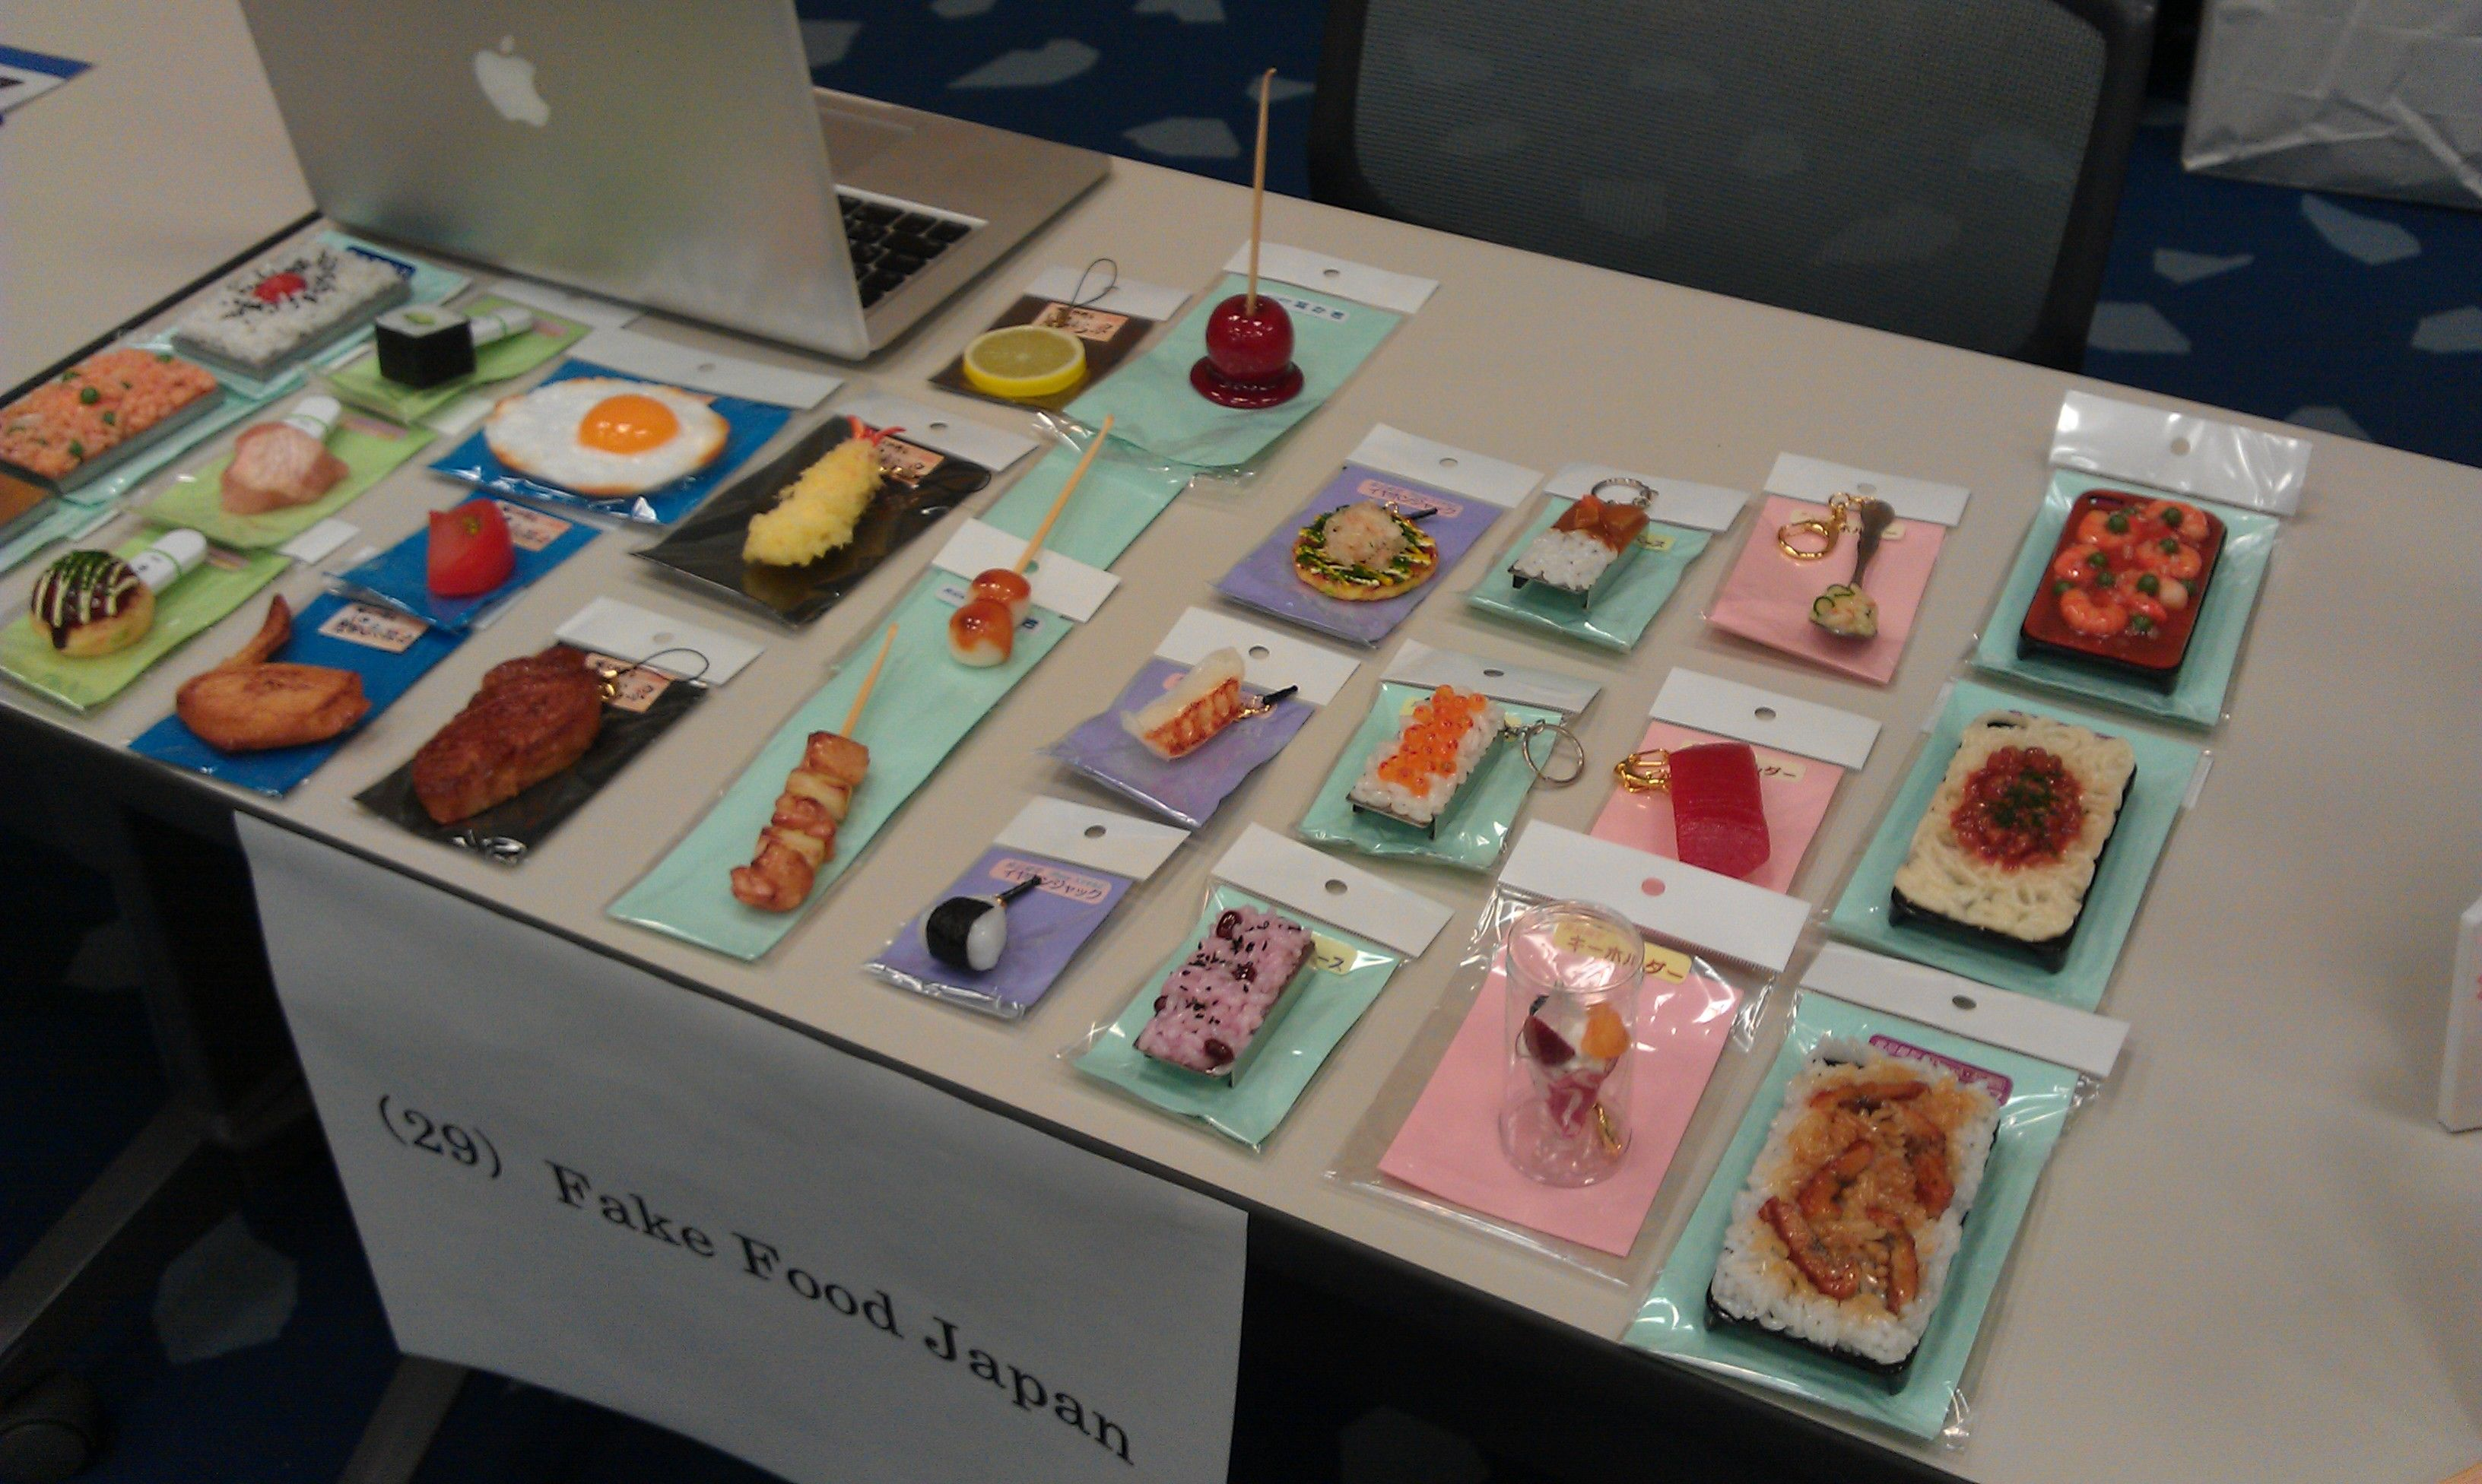 Here's our product lineup that we showcased at the Osaka Sansokan business matching event on August 7, 2012.